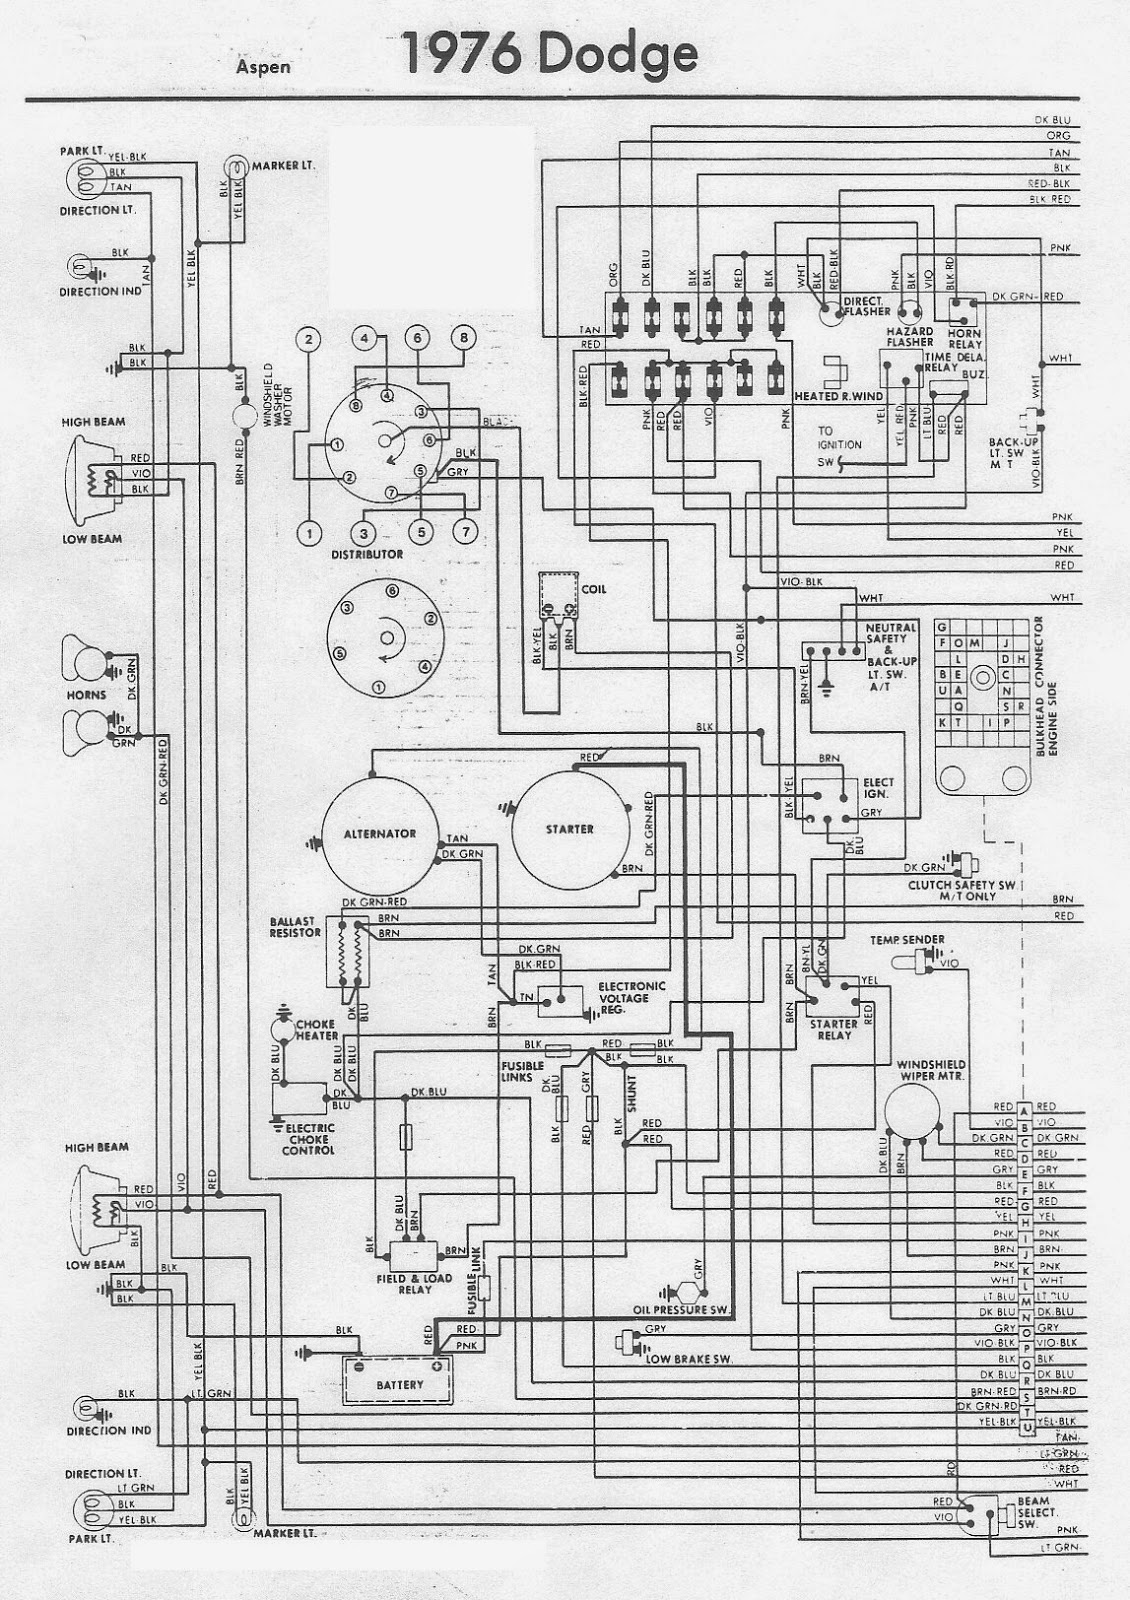 the 1976 dodge aspen wiring diagram electrical system. Black Bedroom Furniture Sets. Home Design Ideas